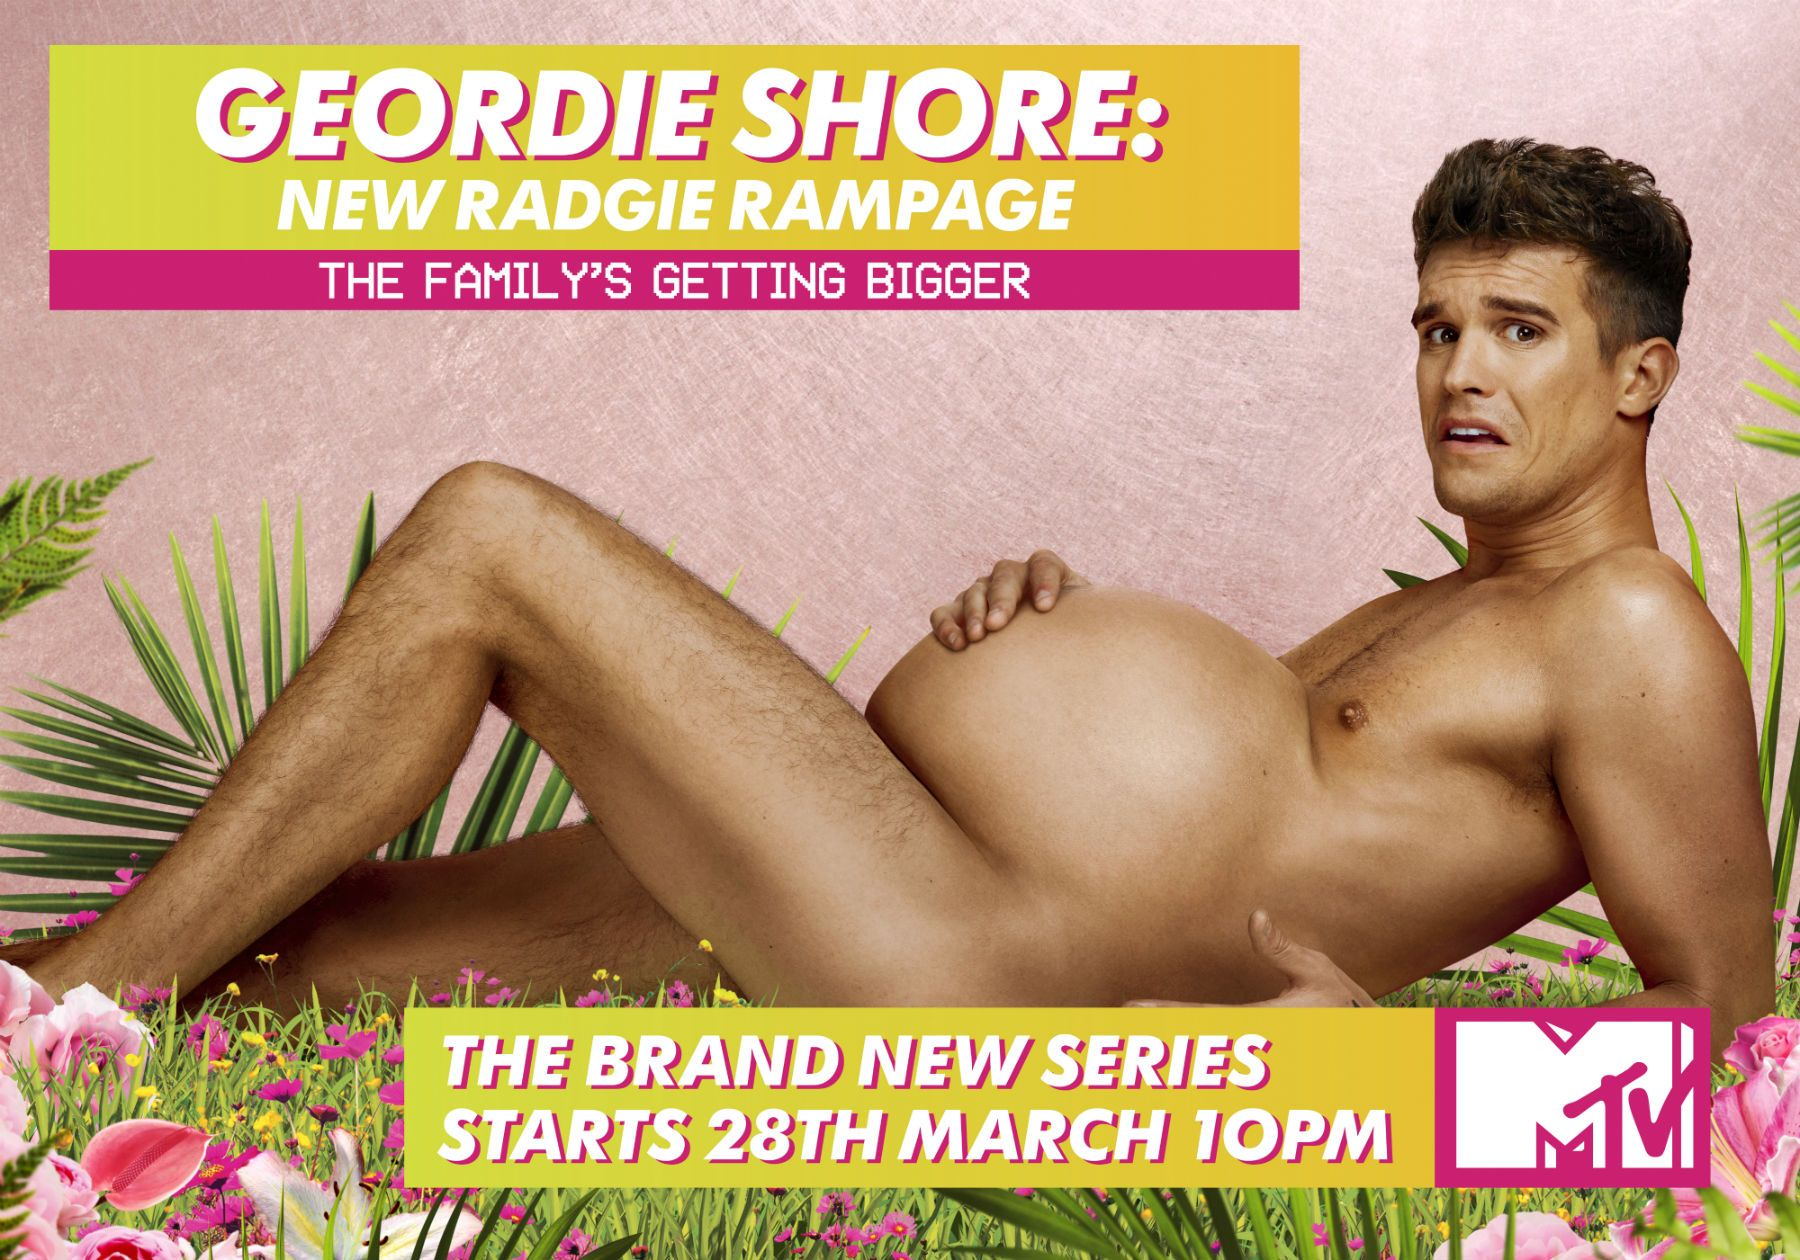 Geordie Shore Naked Pictures holly hagan slams geordie shore ad showing gaz giving birth